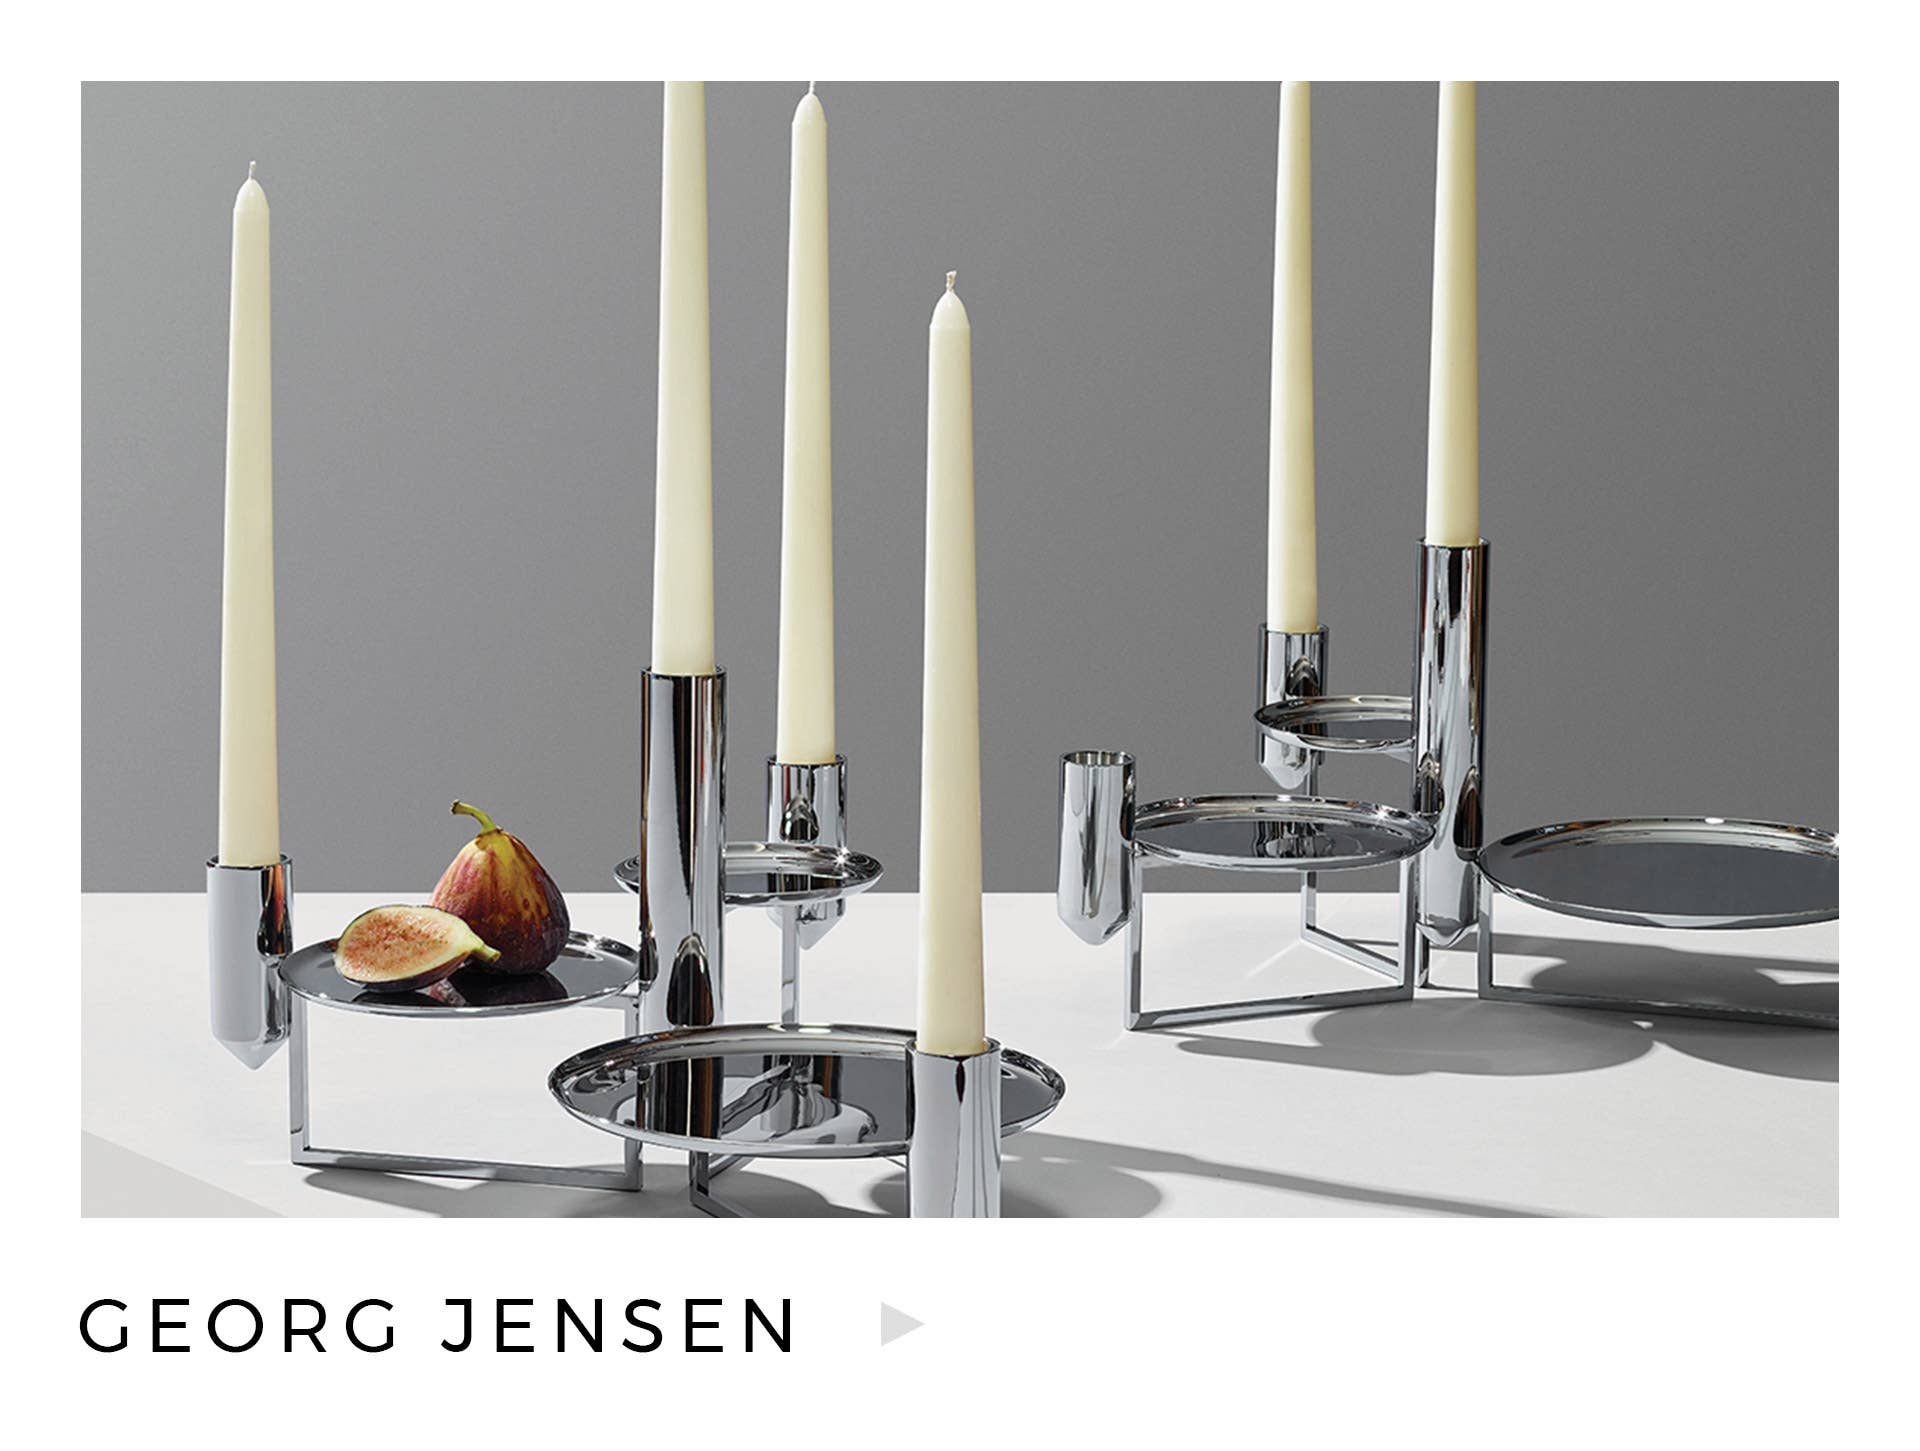 Shop our collection of Georg Jensen items like this featured Tunes Centerpiece